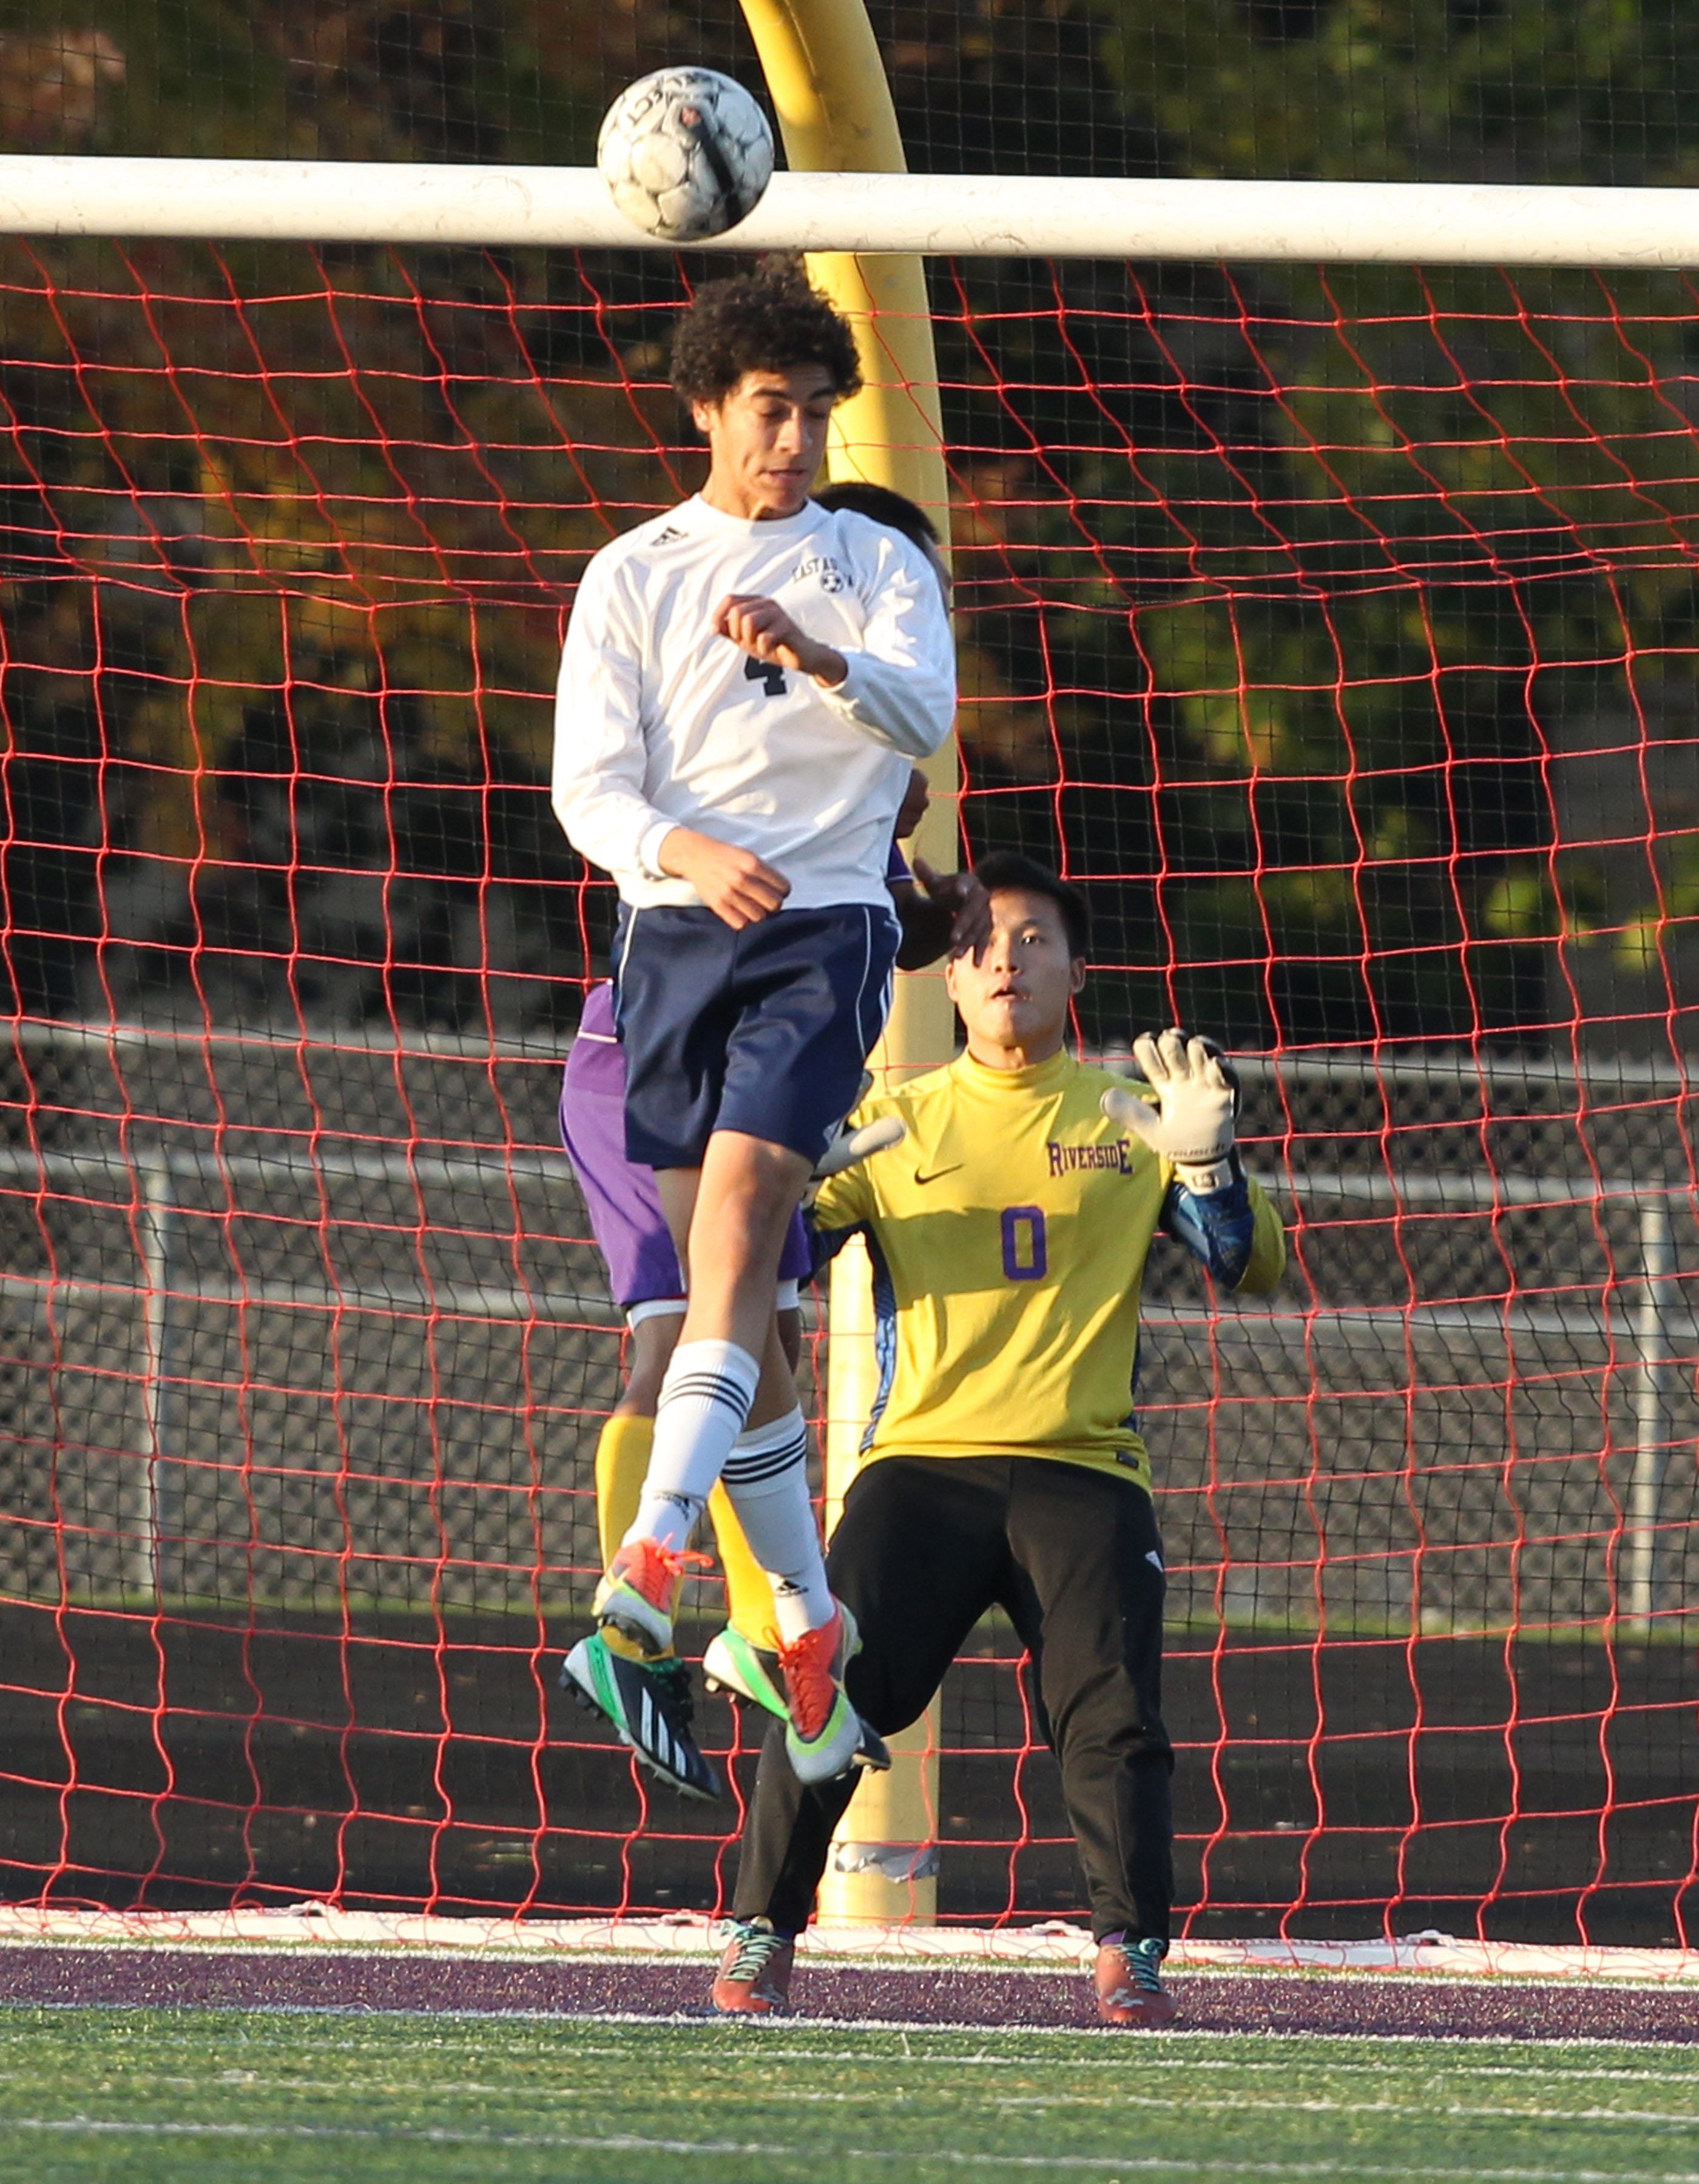 East Aurora's Ben Ingram heads the ball and scores a goal over Riverside goalie Sah Moo in the Class A-2 championship.